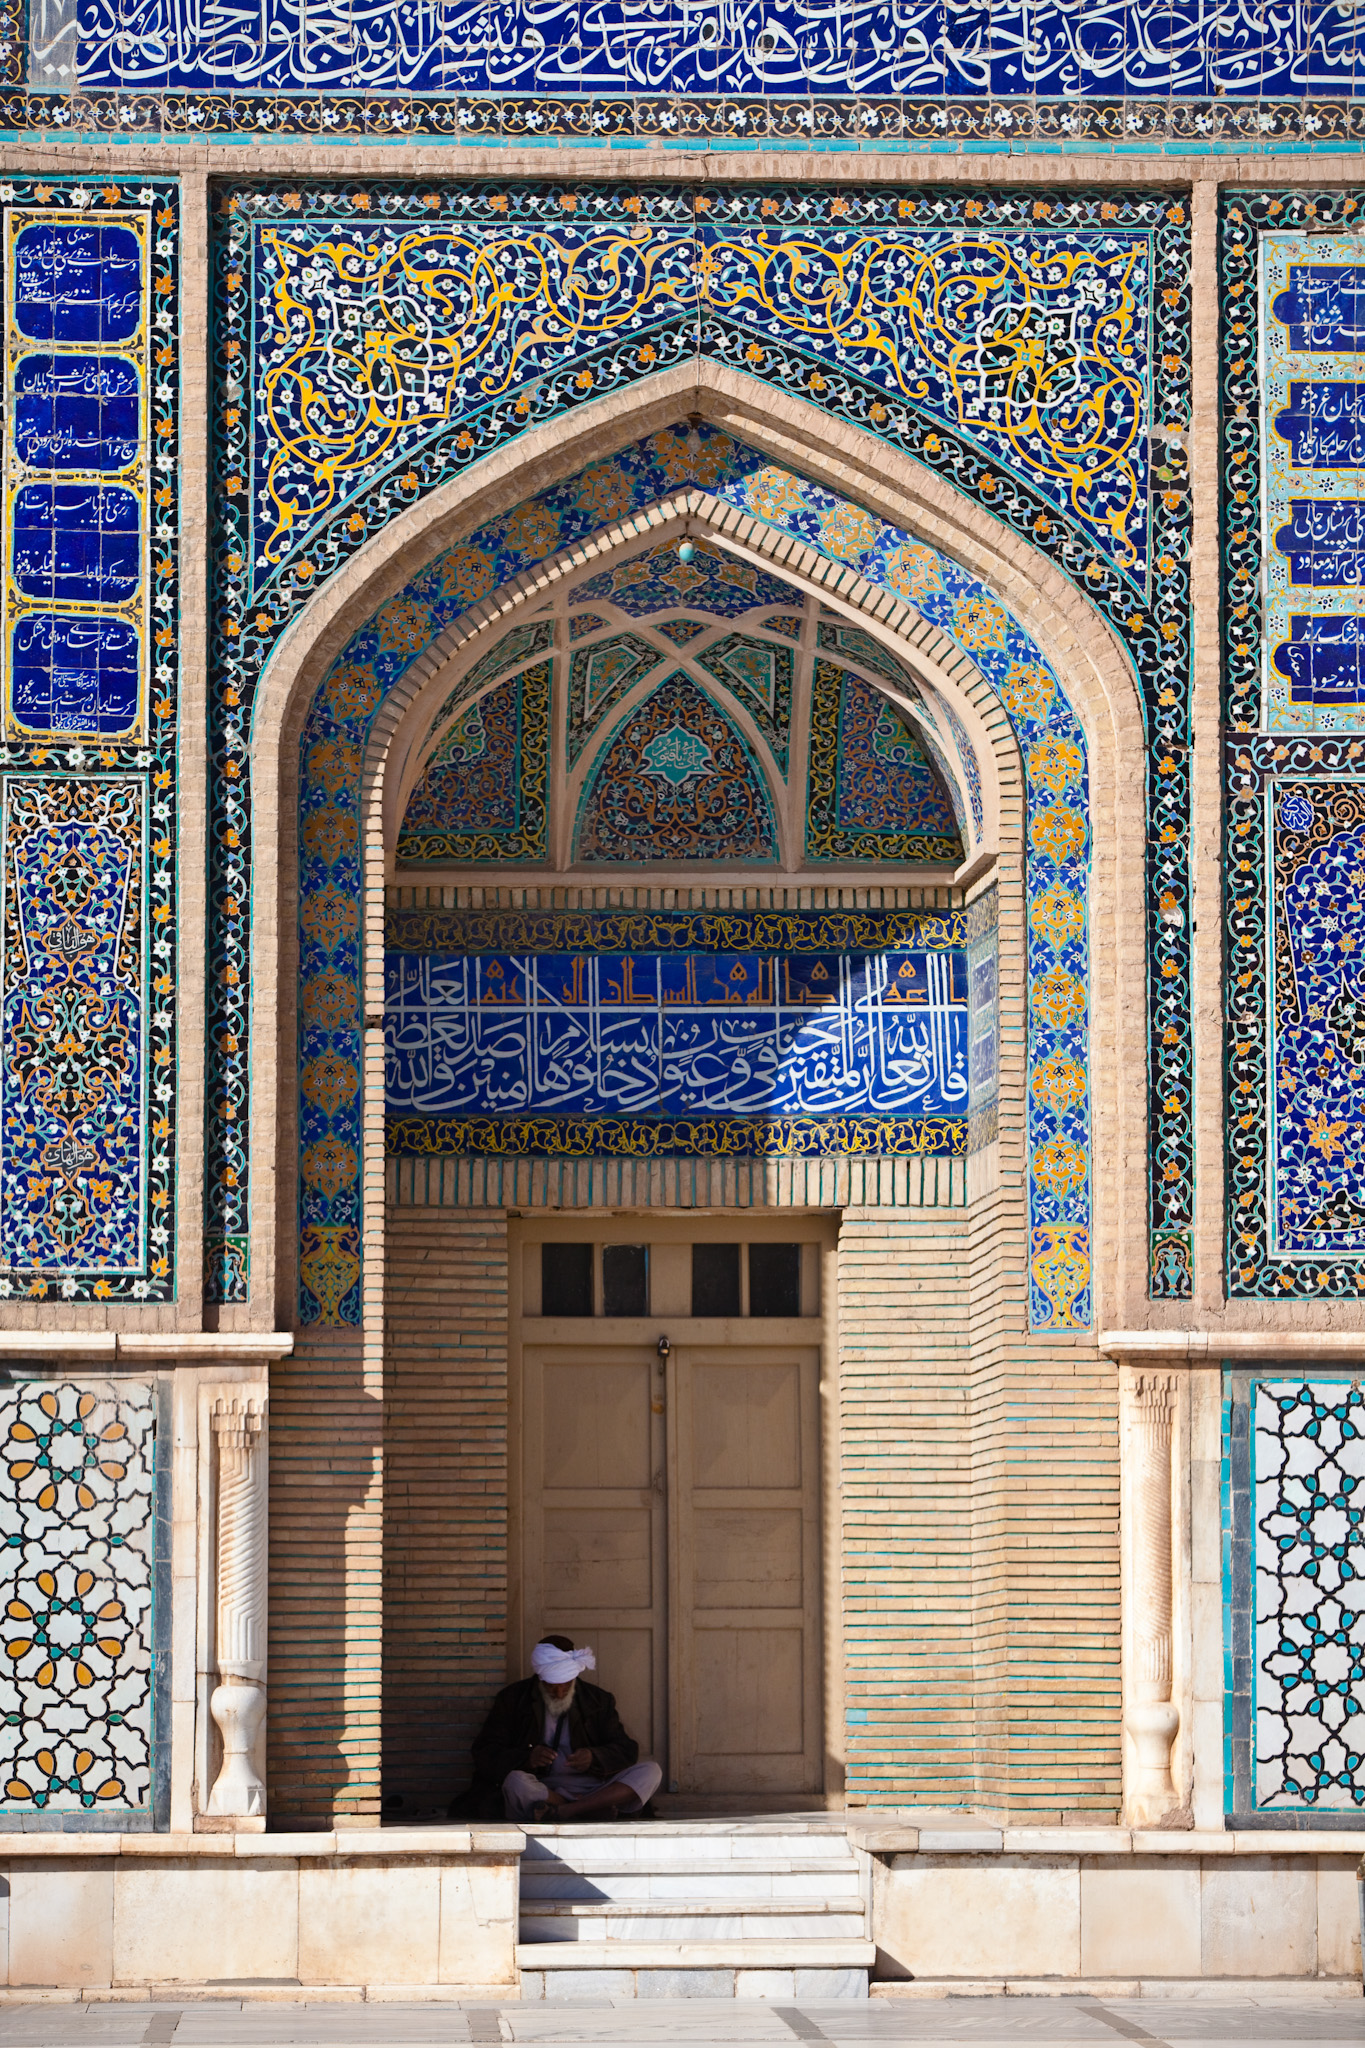 File:Friday Mosque Herat Door Detail